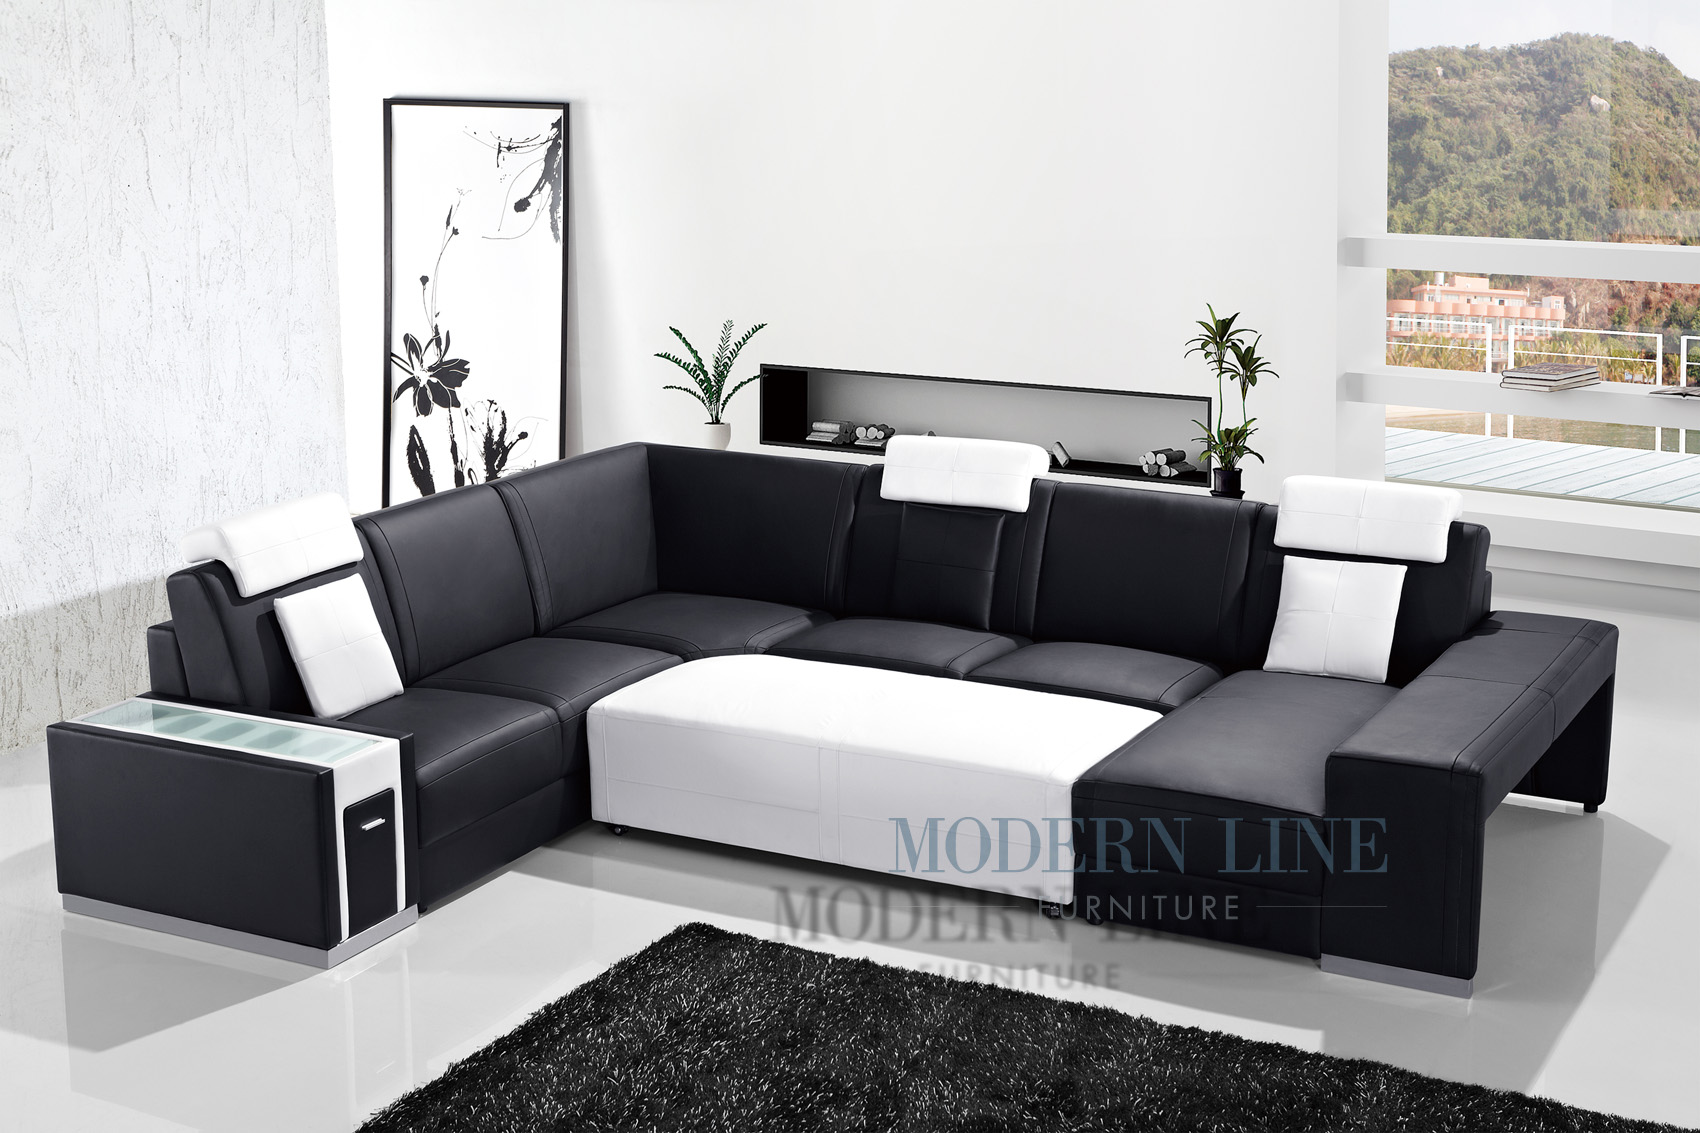 Modern Line Furniture Mercial Furniture  Custom Made Furniture  Ulta  Modern Black Leather Sectional Sofa With Console And Large Ottoman